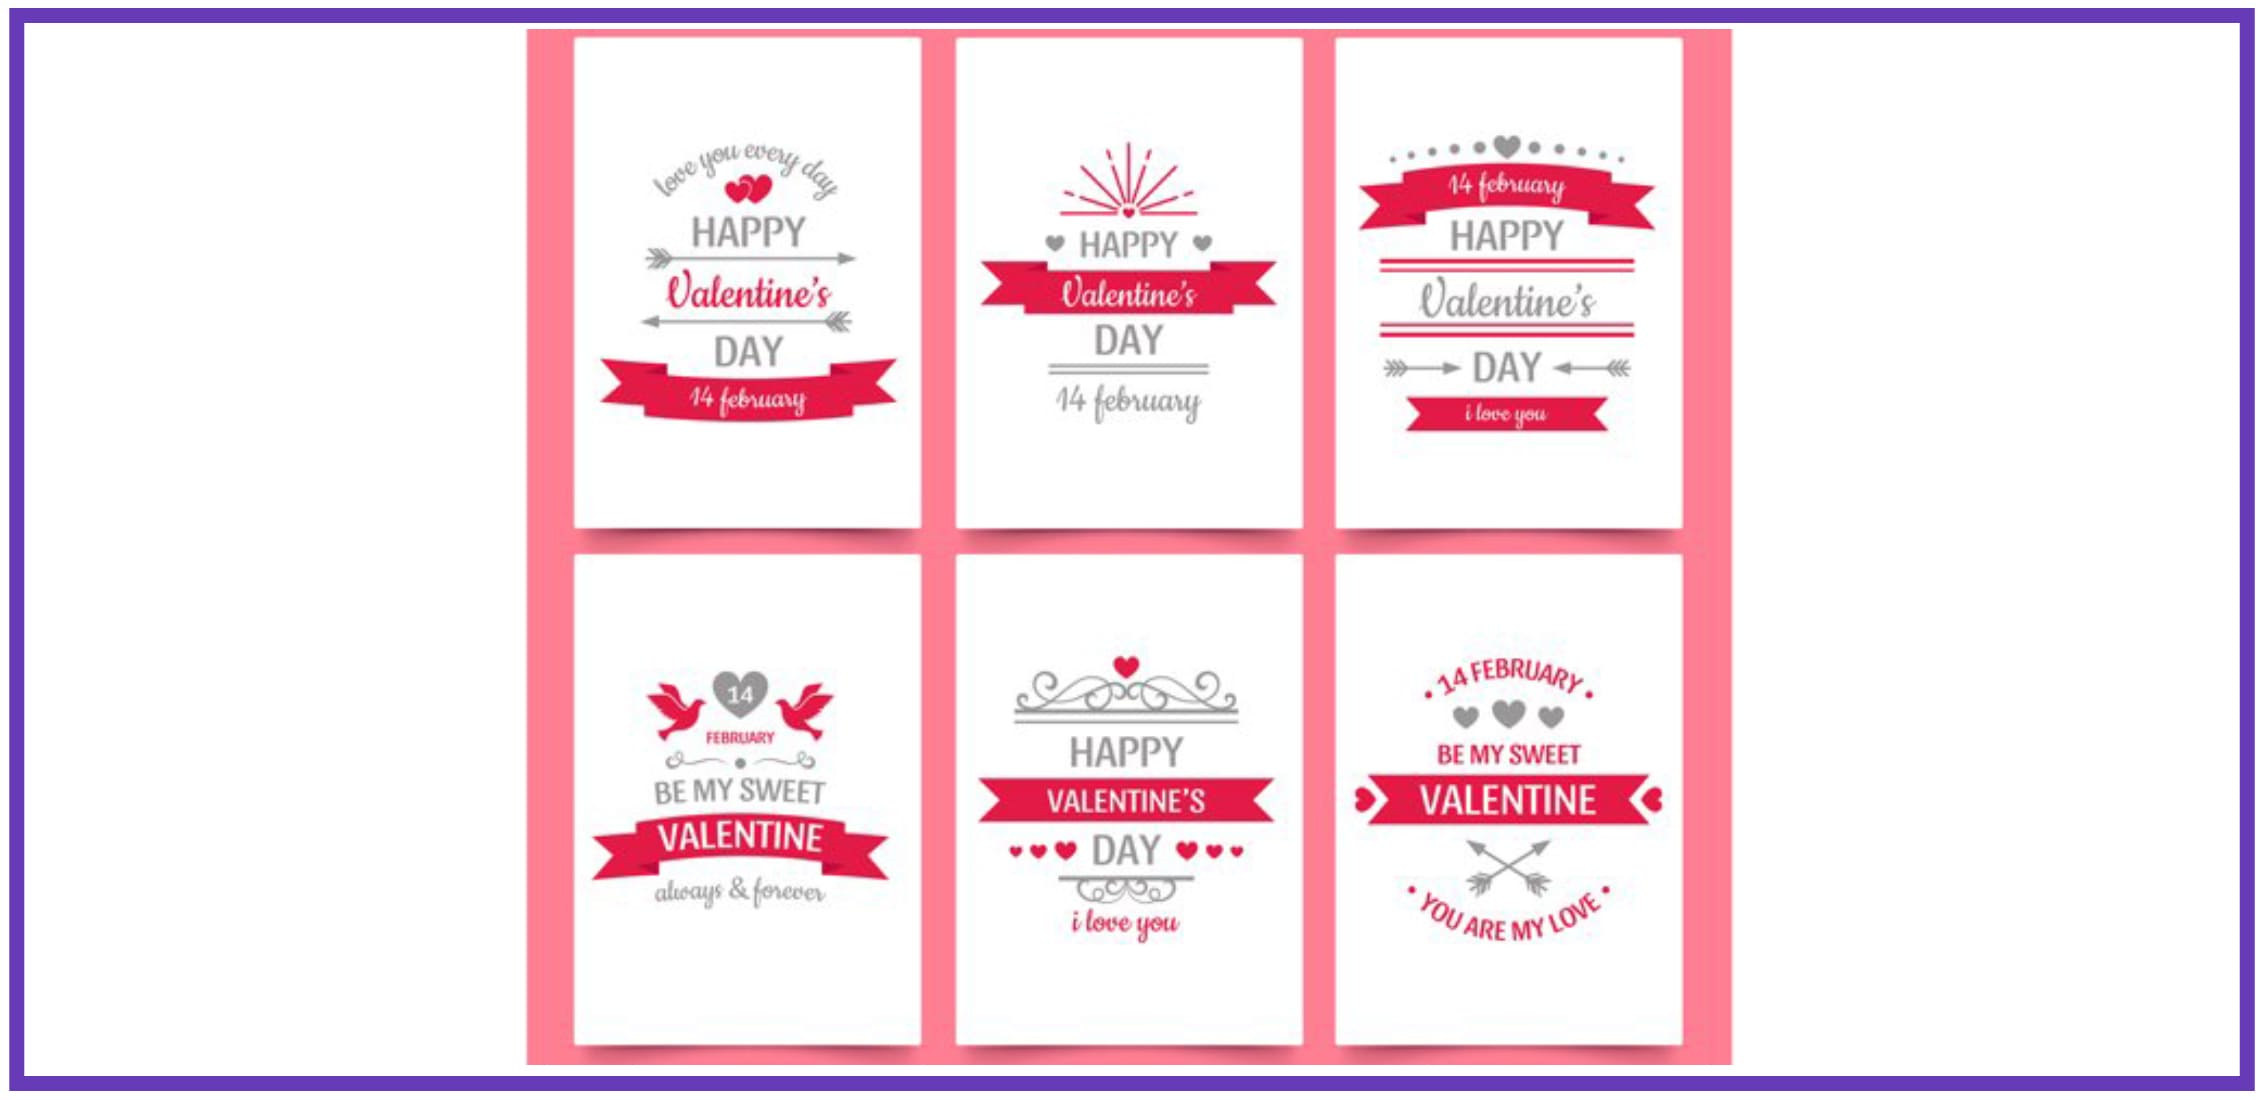 70+ Valentine's Day Cards 2021. Do not Forget about a Heartfelt Card for Your Valentine - valentines day card 32